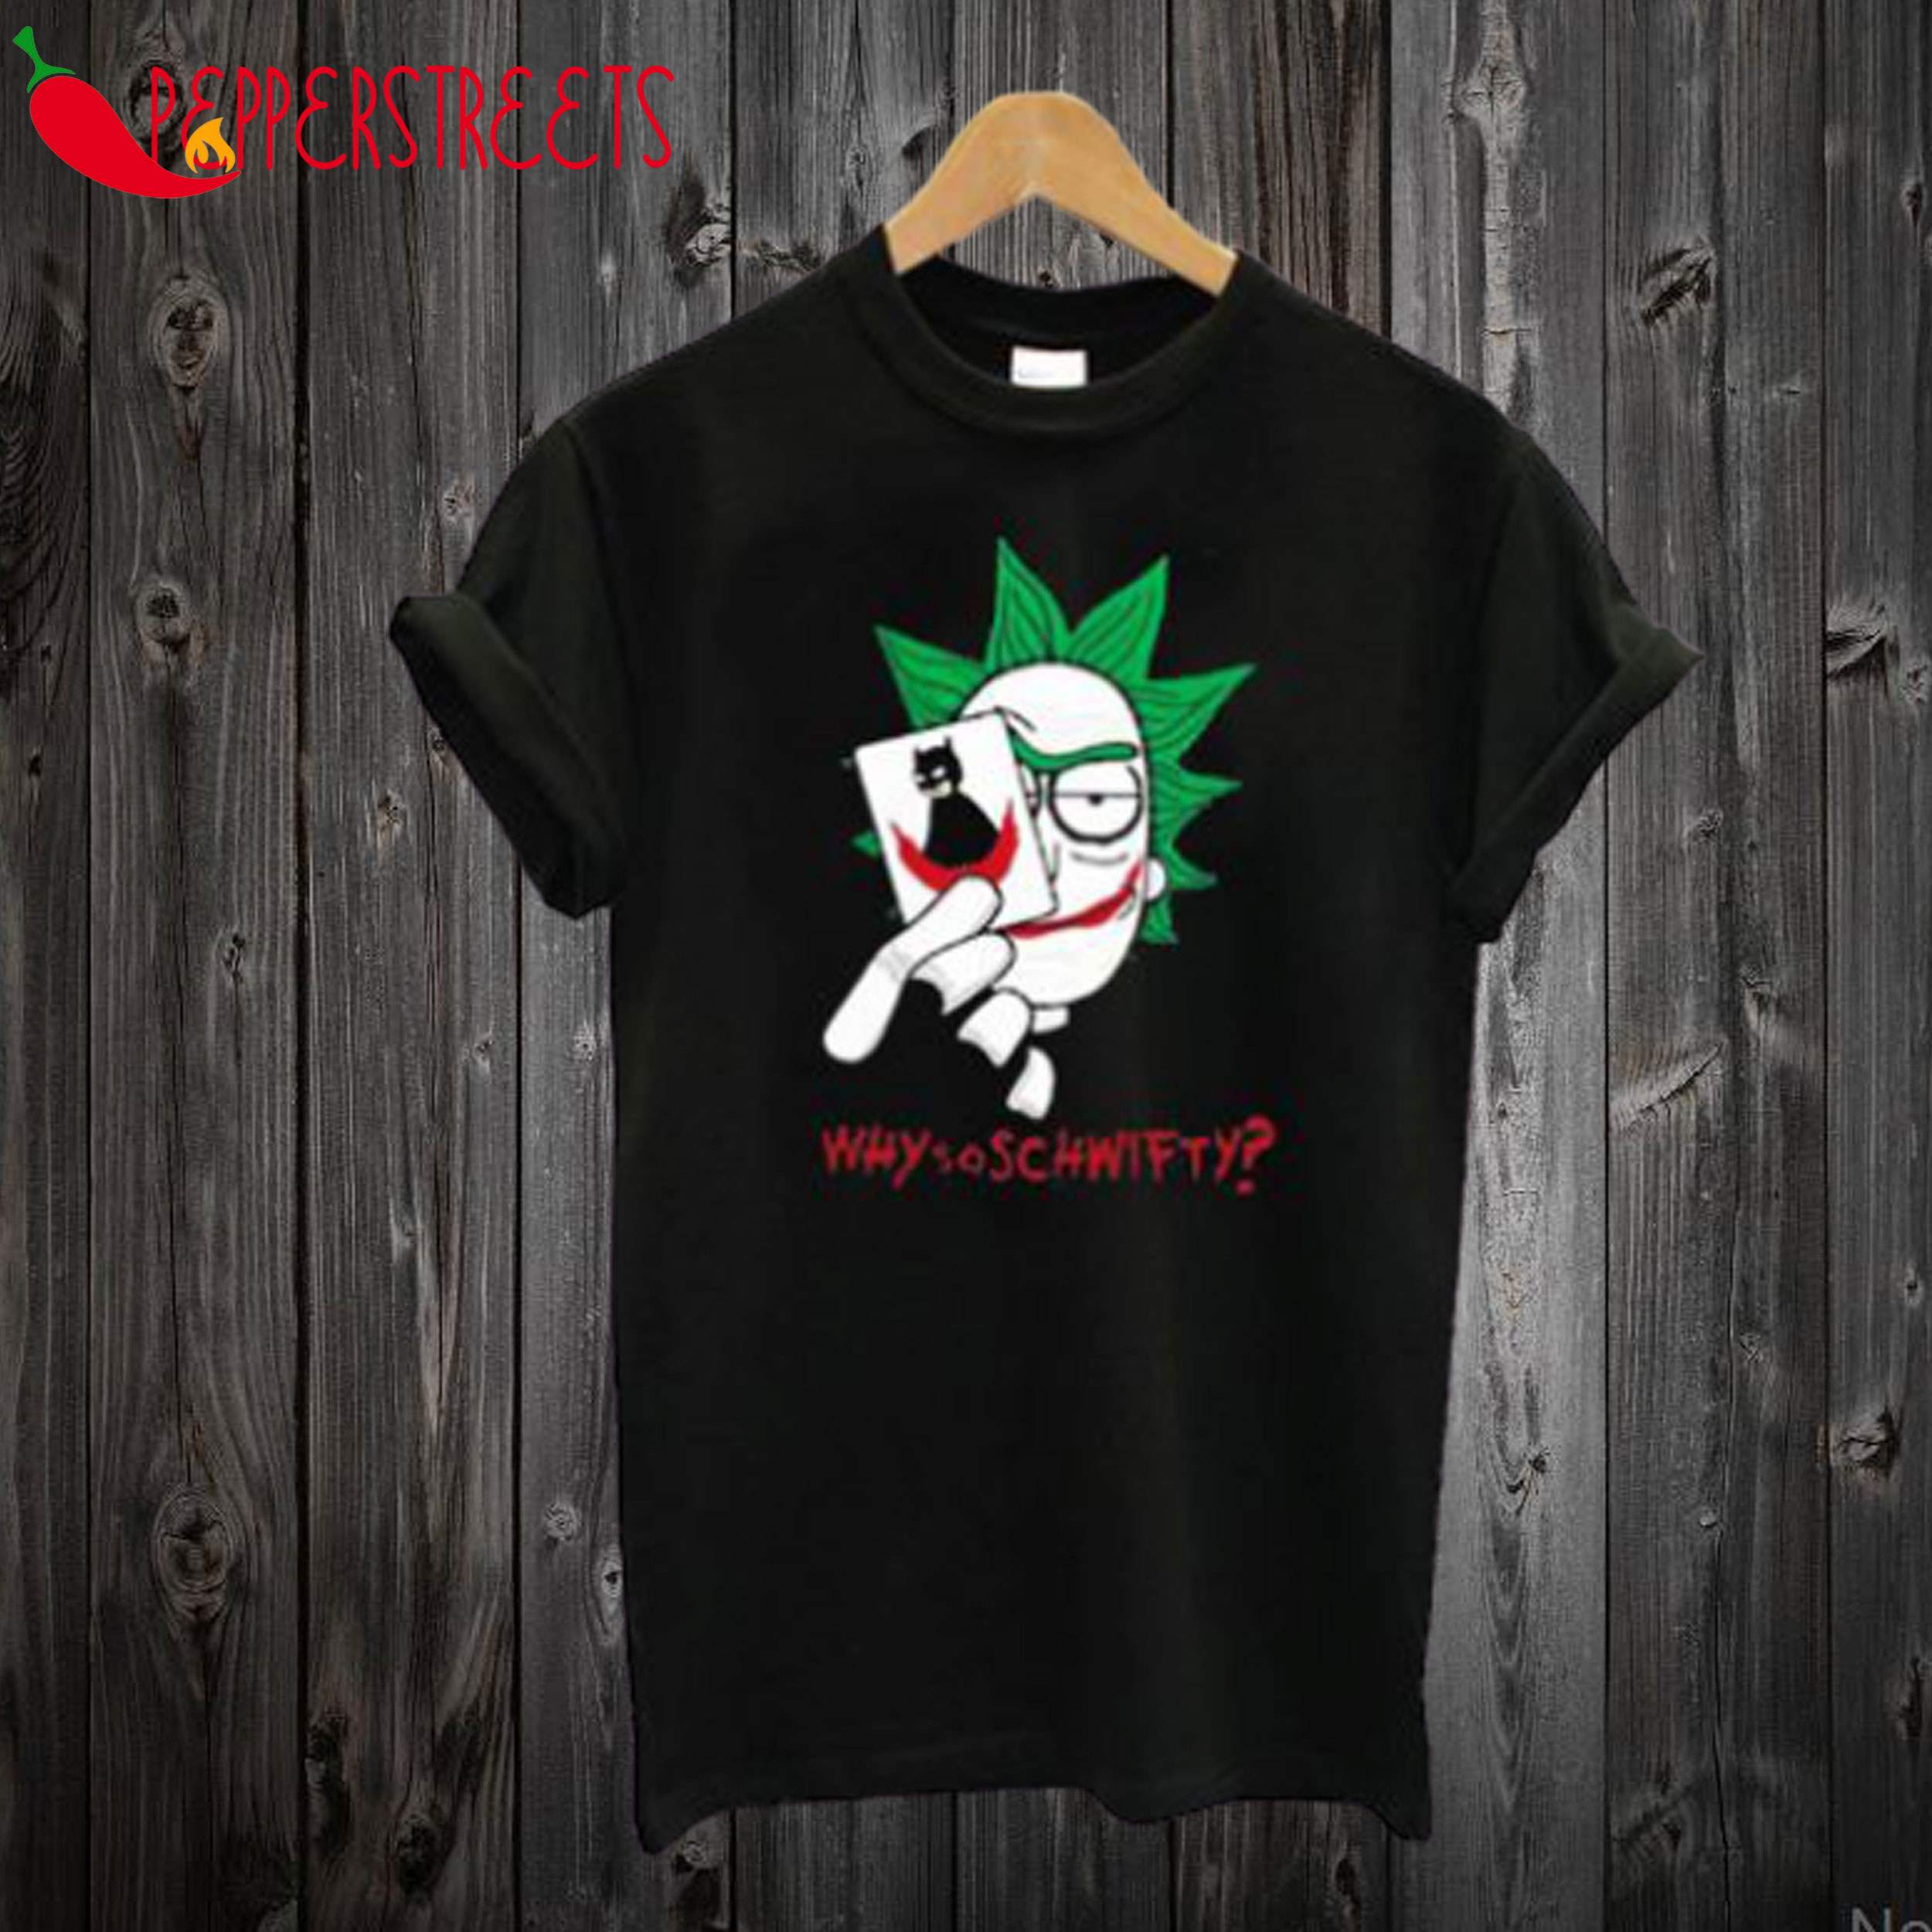 Why So Schwifty Rick Sanchez With Joker Face T-Shirt